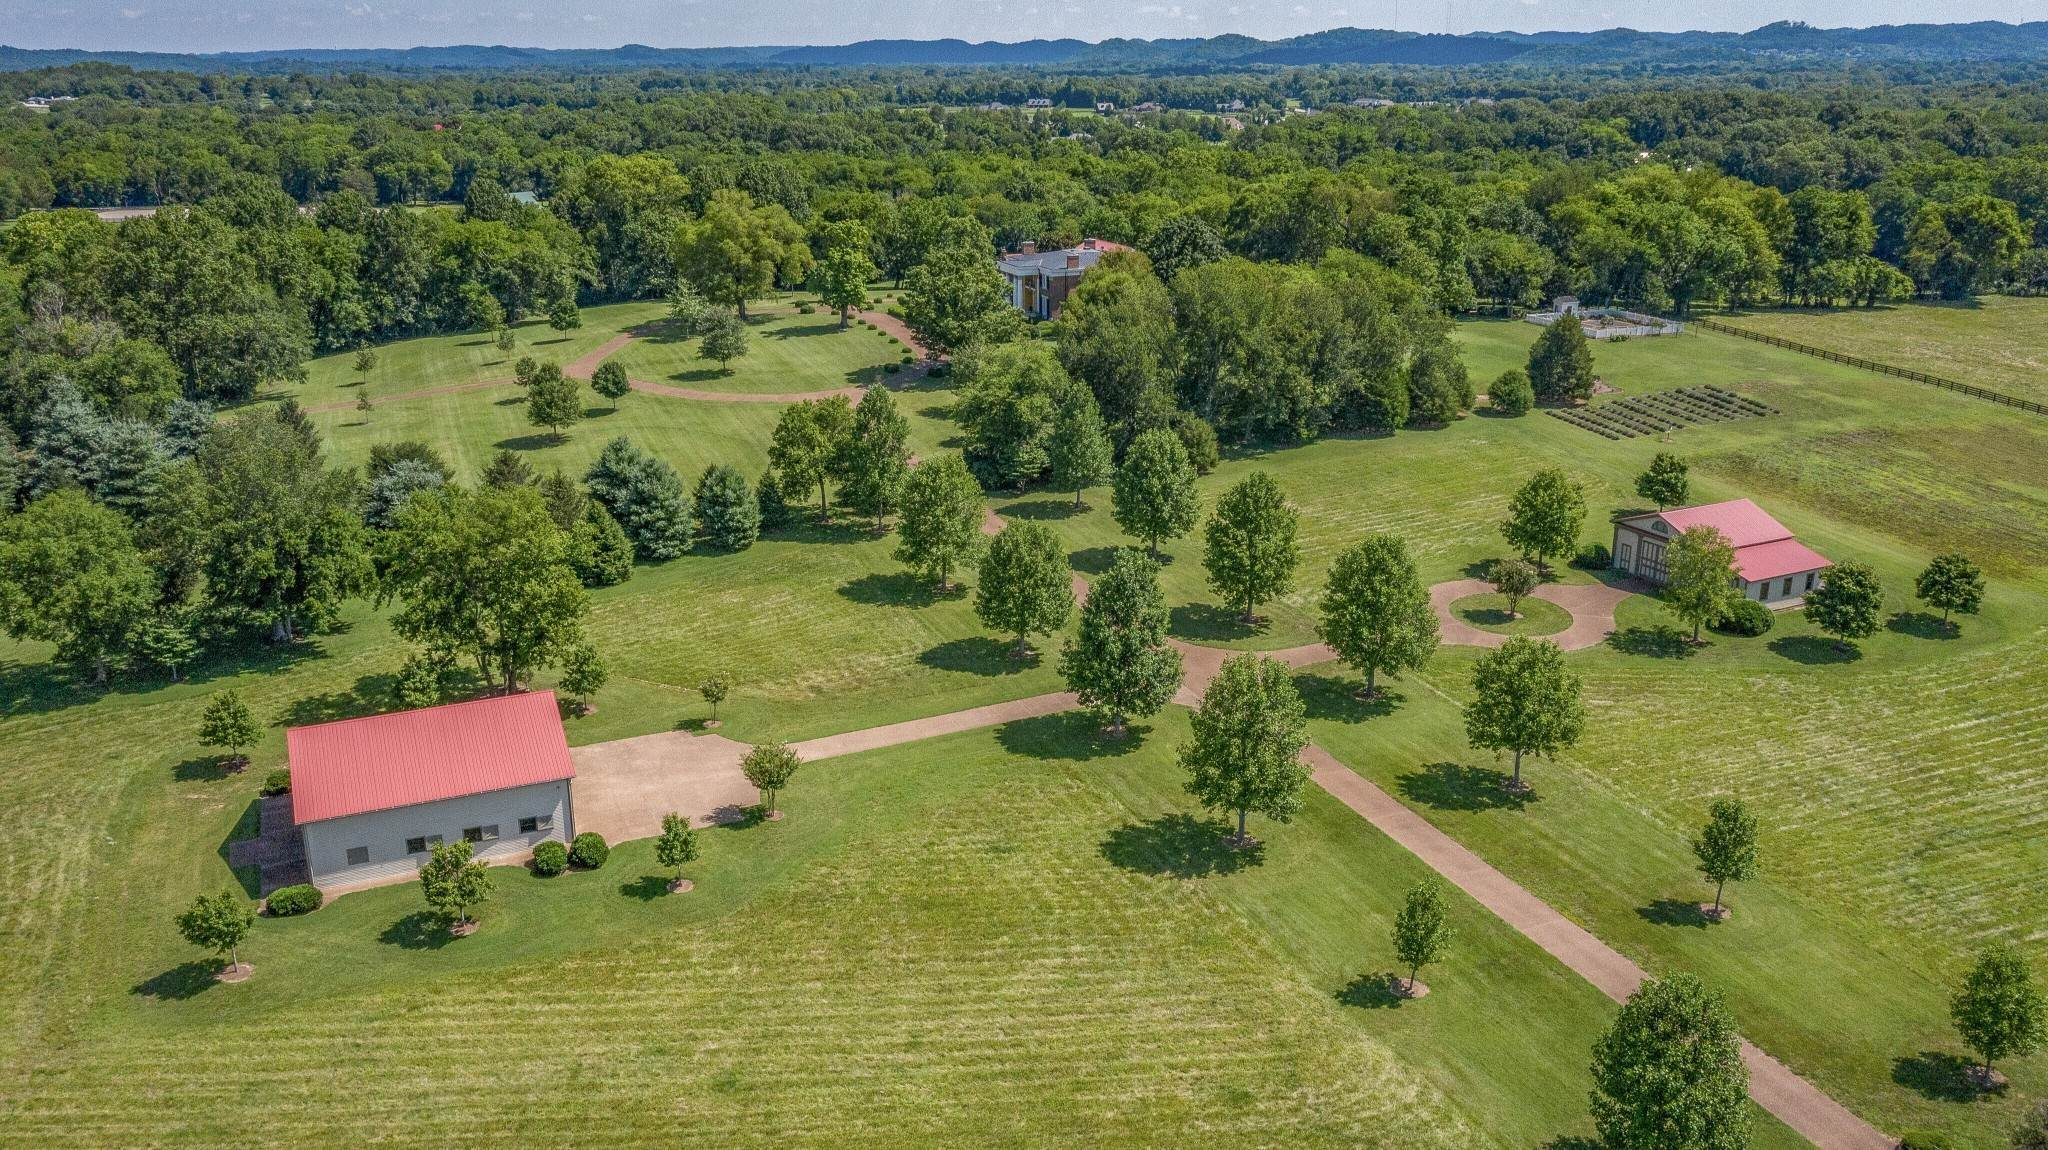 44. Single Family Homes for Sale at 1711 Old Hillsboro Road Franklin, Tennessee 37069 United States